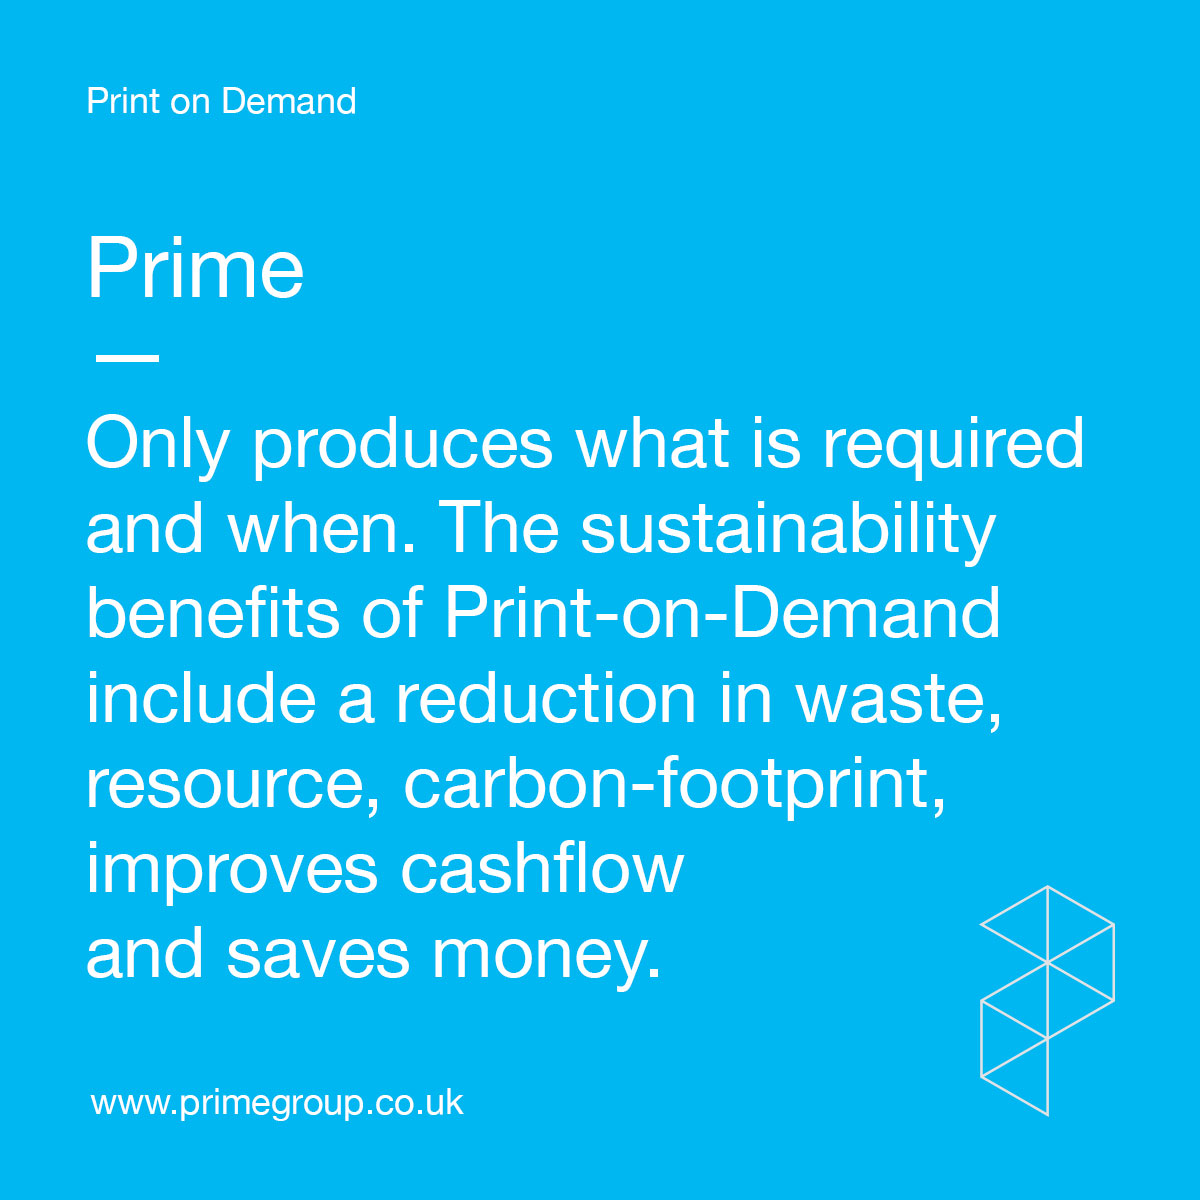 The sustainability benefits of Print-on-Demand